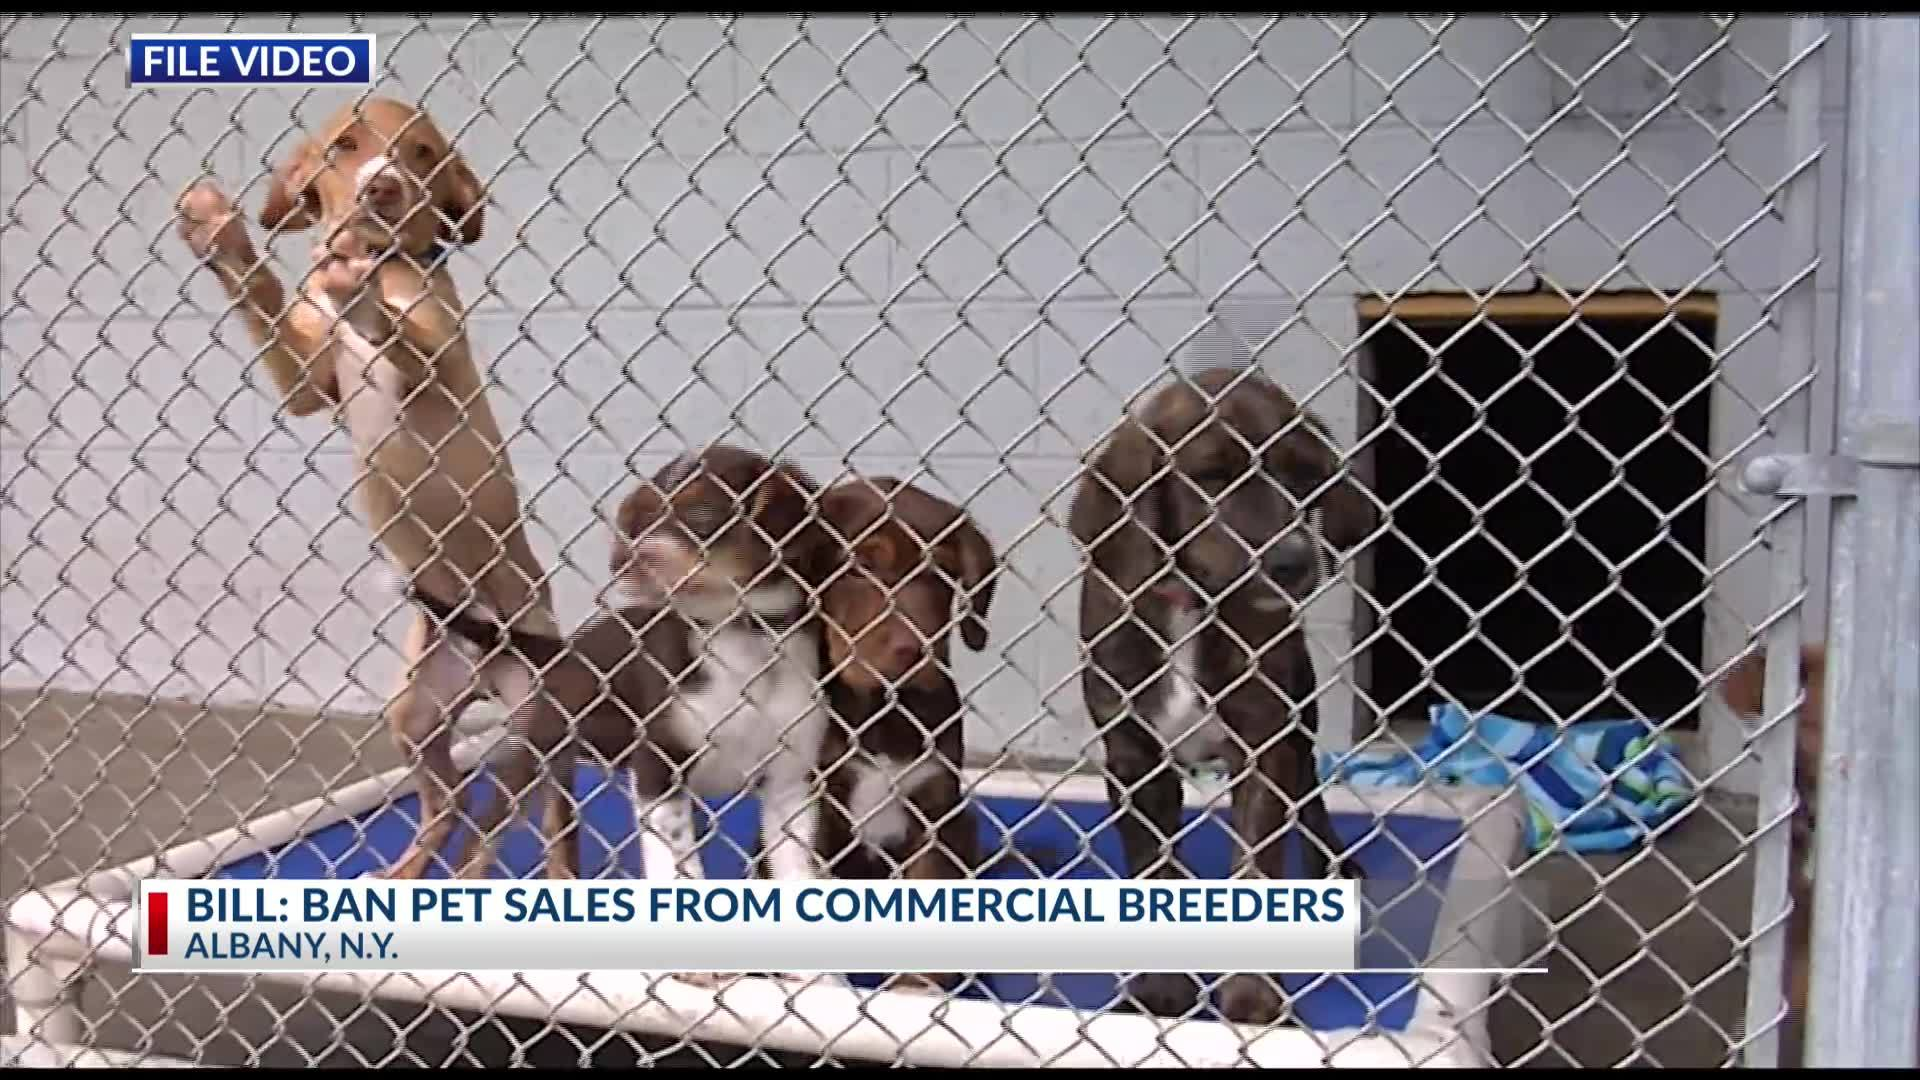 Lawmakers_push_to_ban_sales_of_pets_from_5_20190310050314